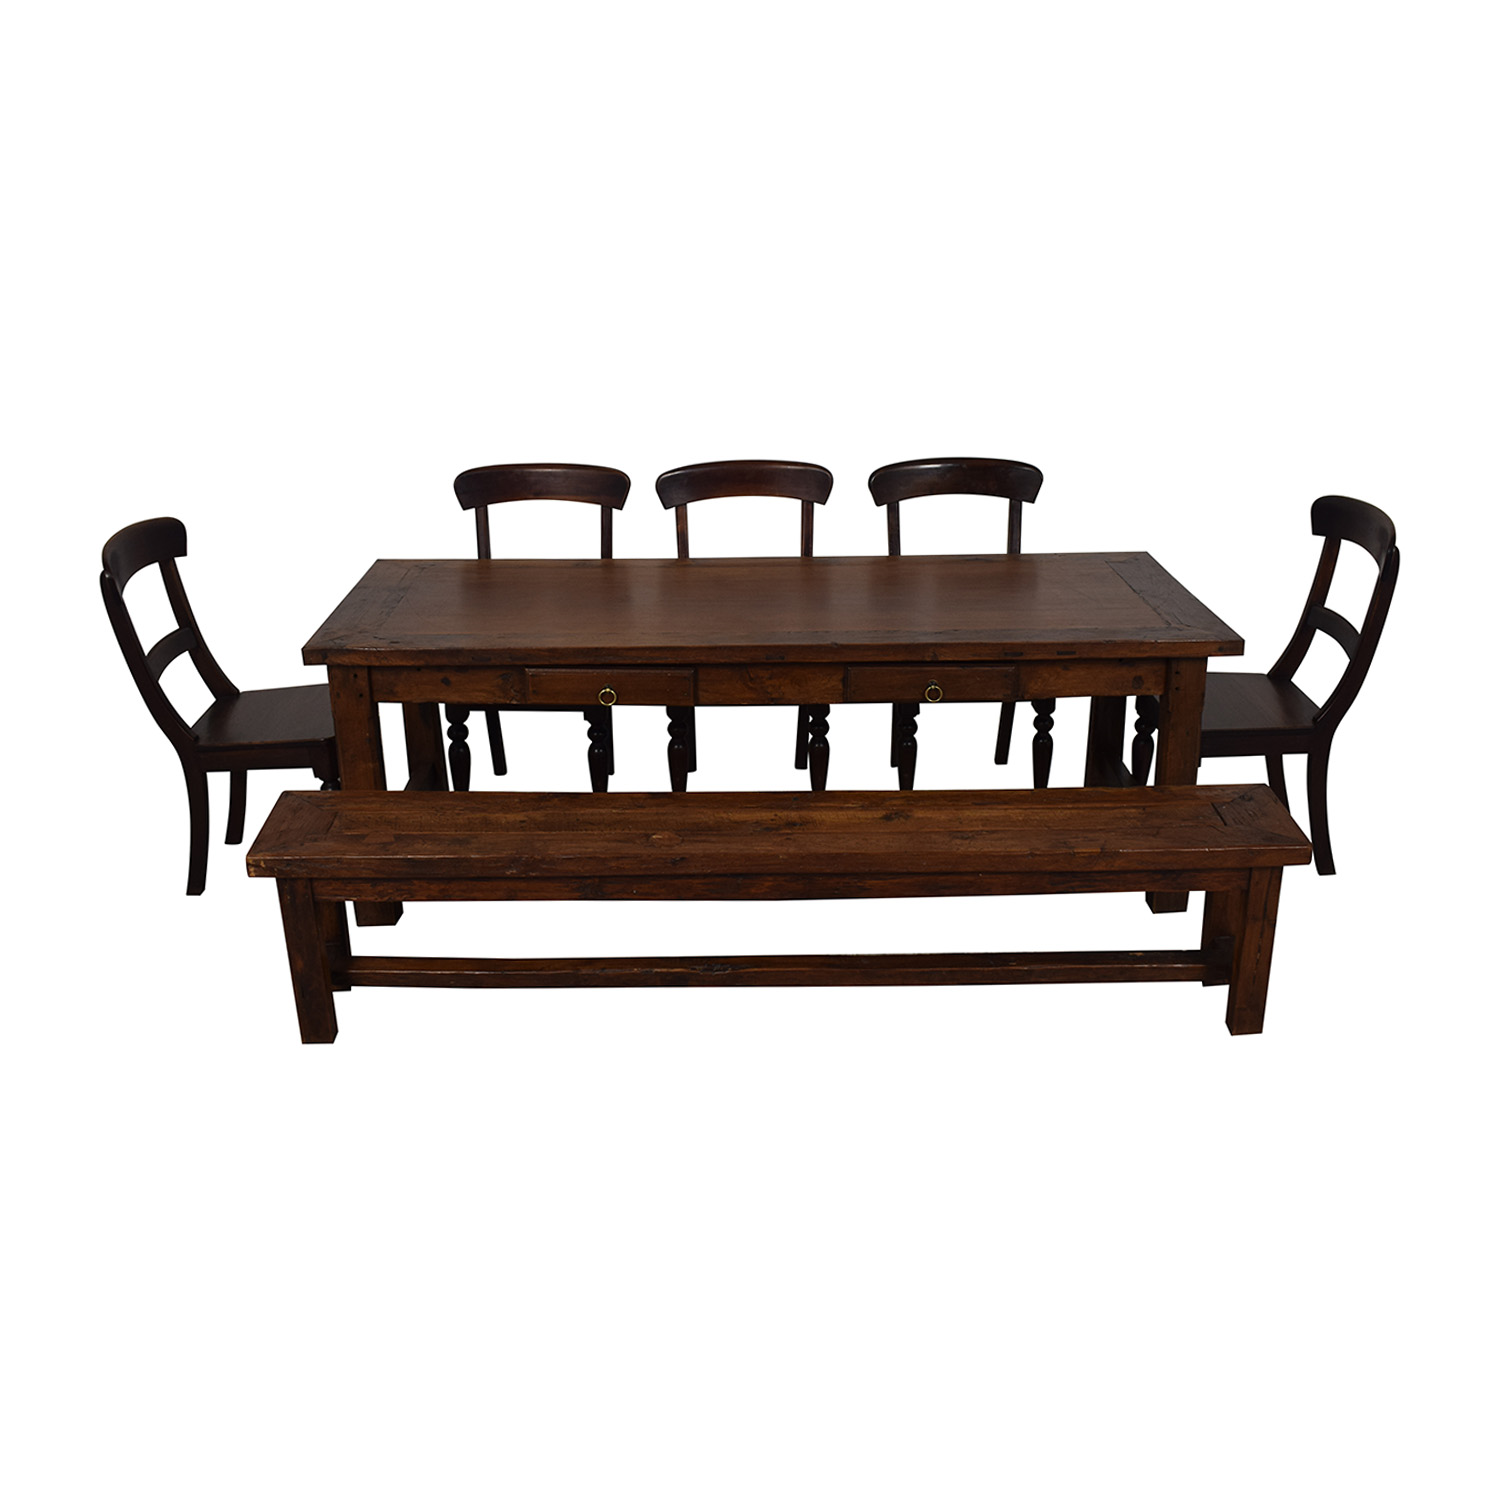 Crate & Barrel Extendable Dining Set with Bench Crate & Barrel